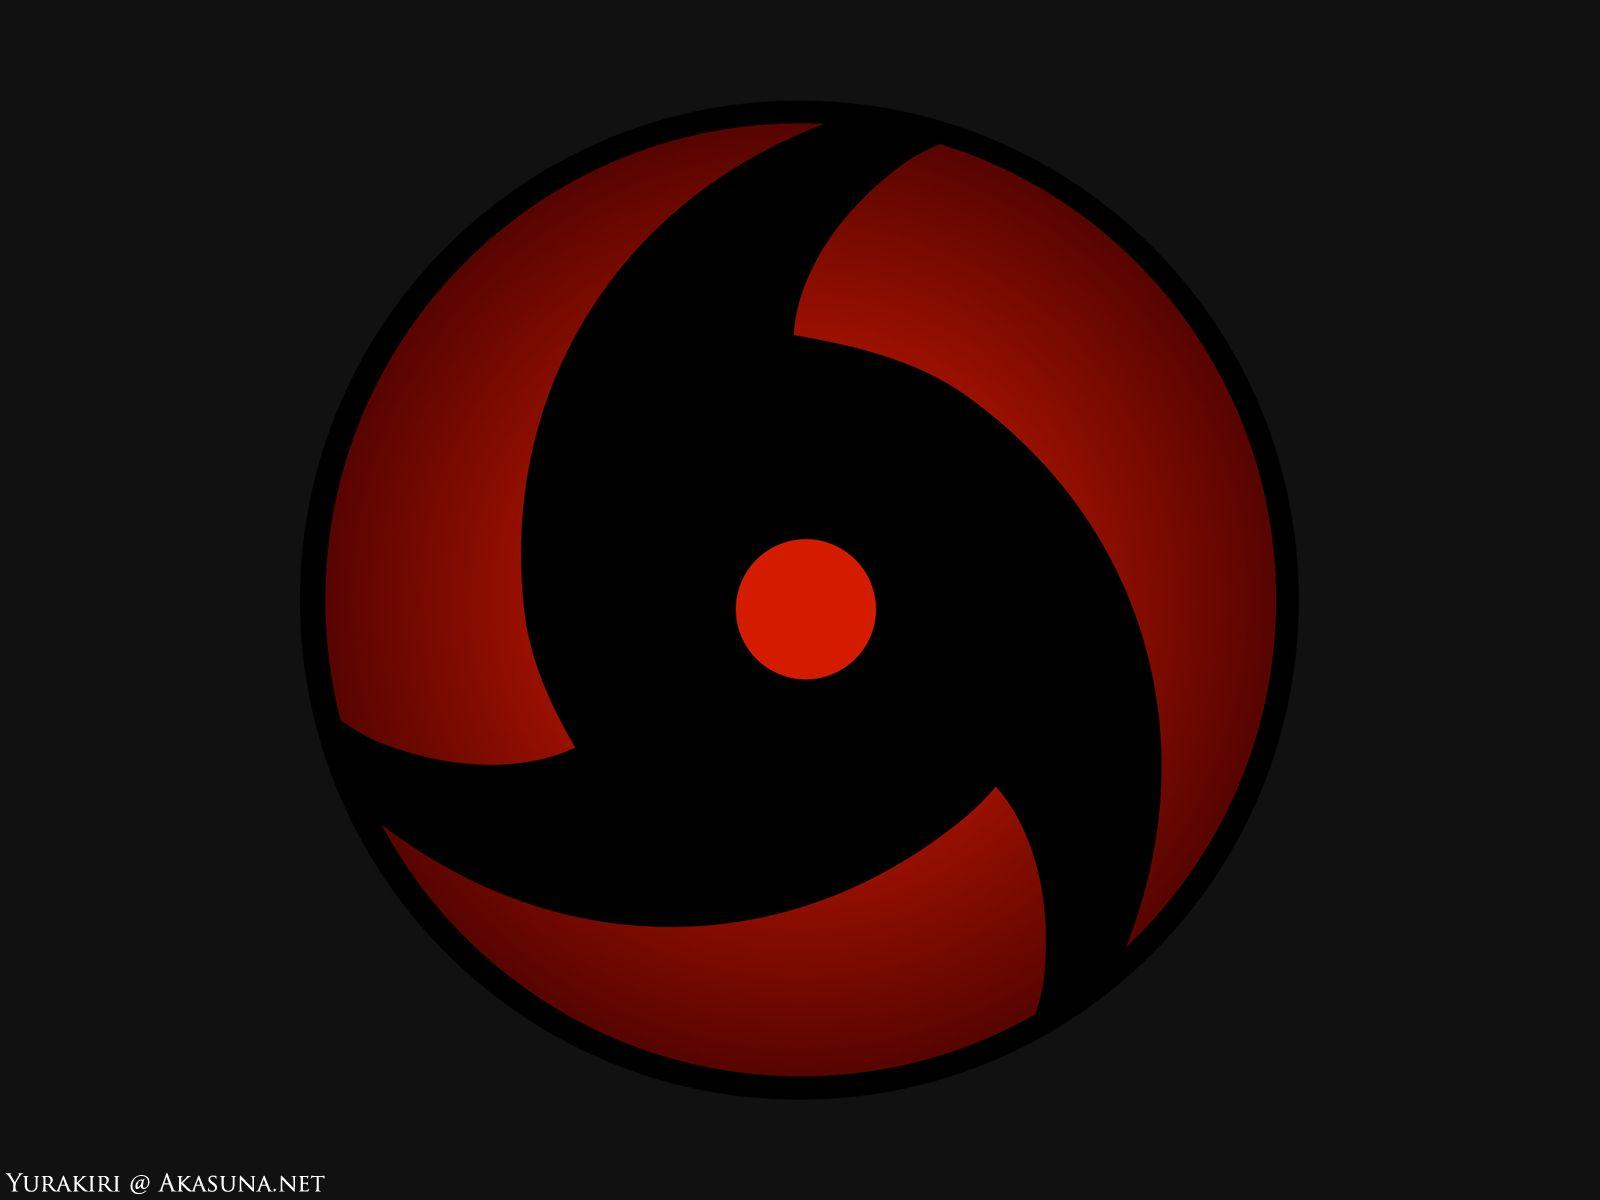 Download Cannabis Itachi Uchiha Mangekyou Sharingan Gif Wallpaper ...